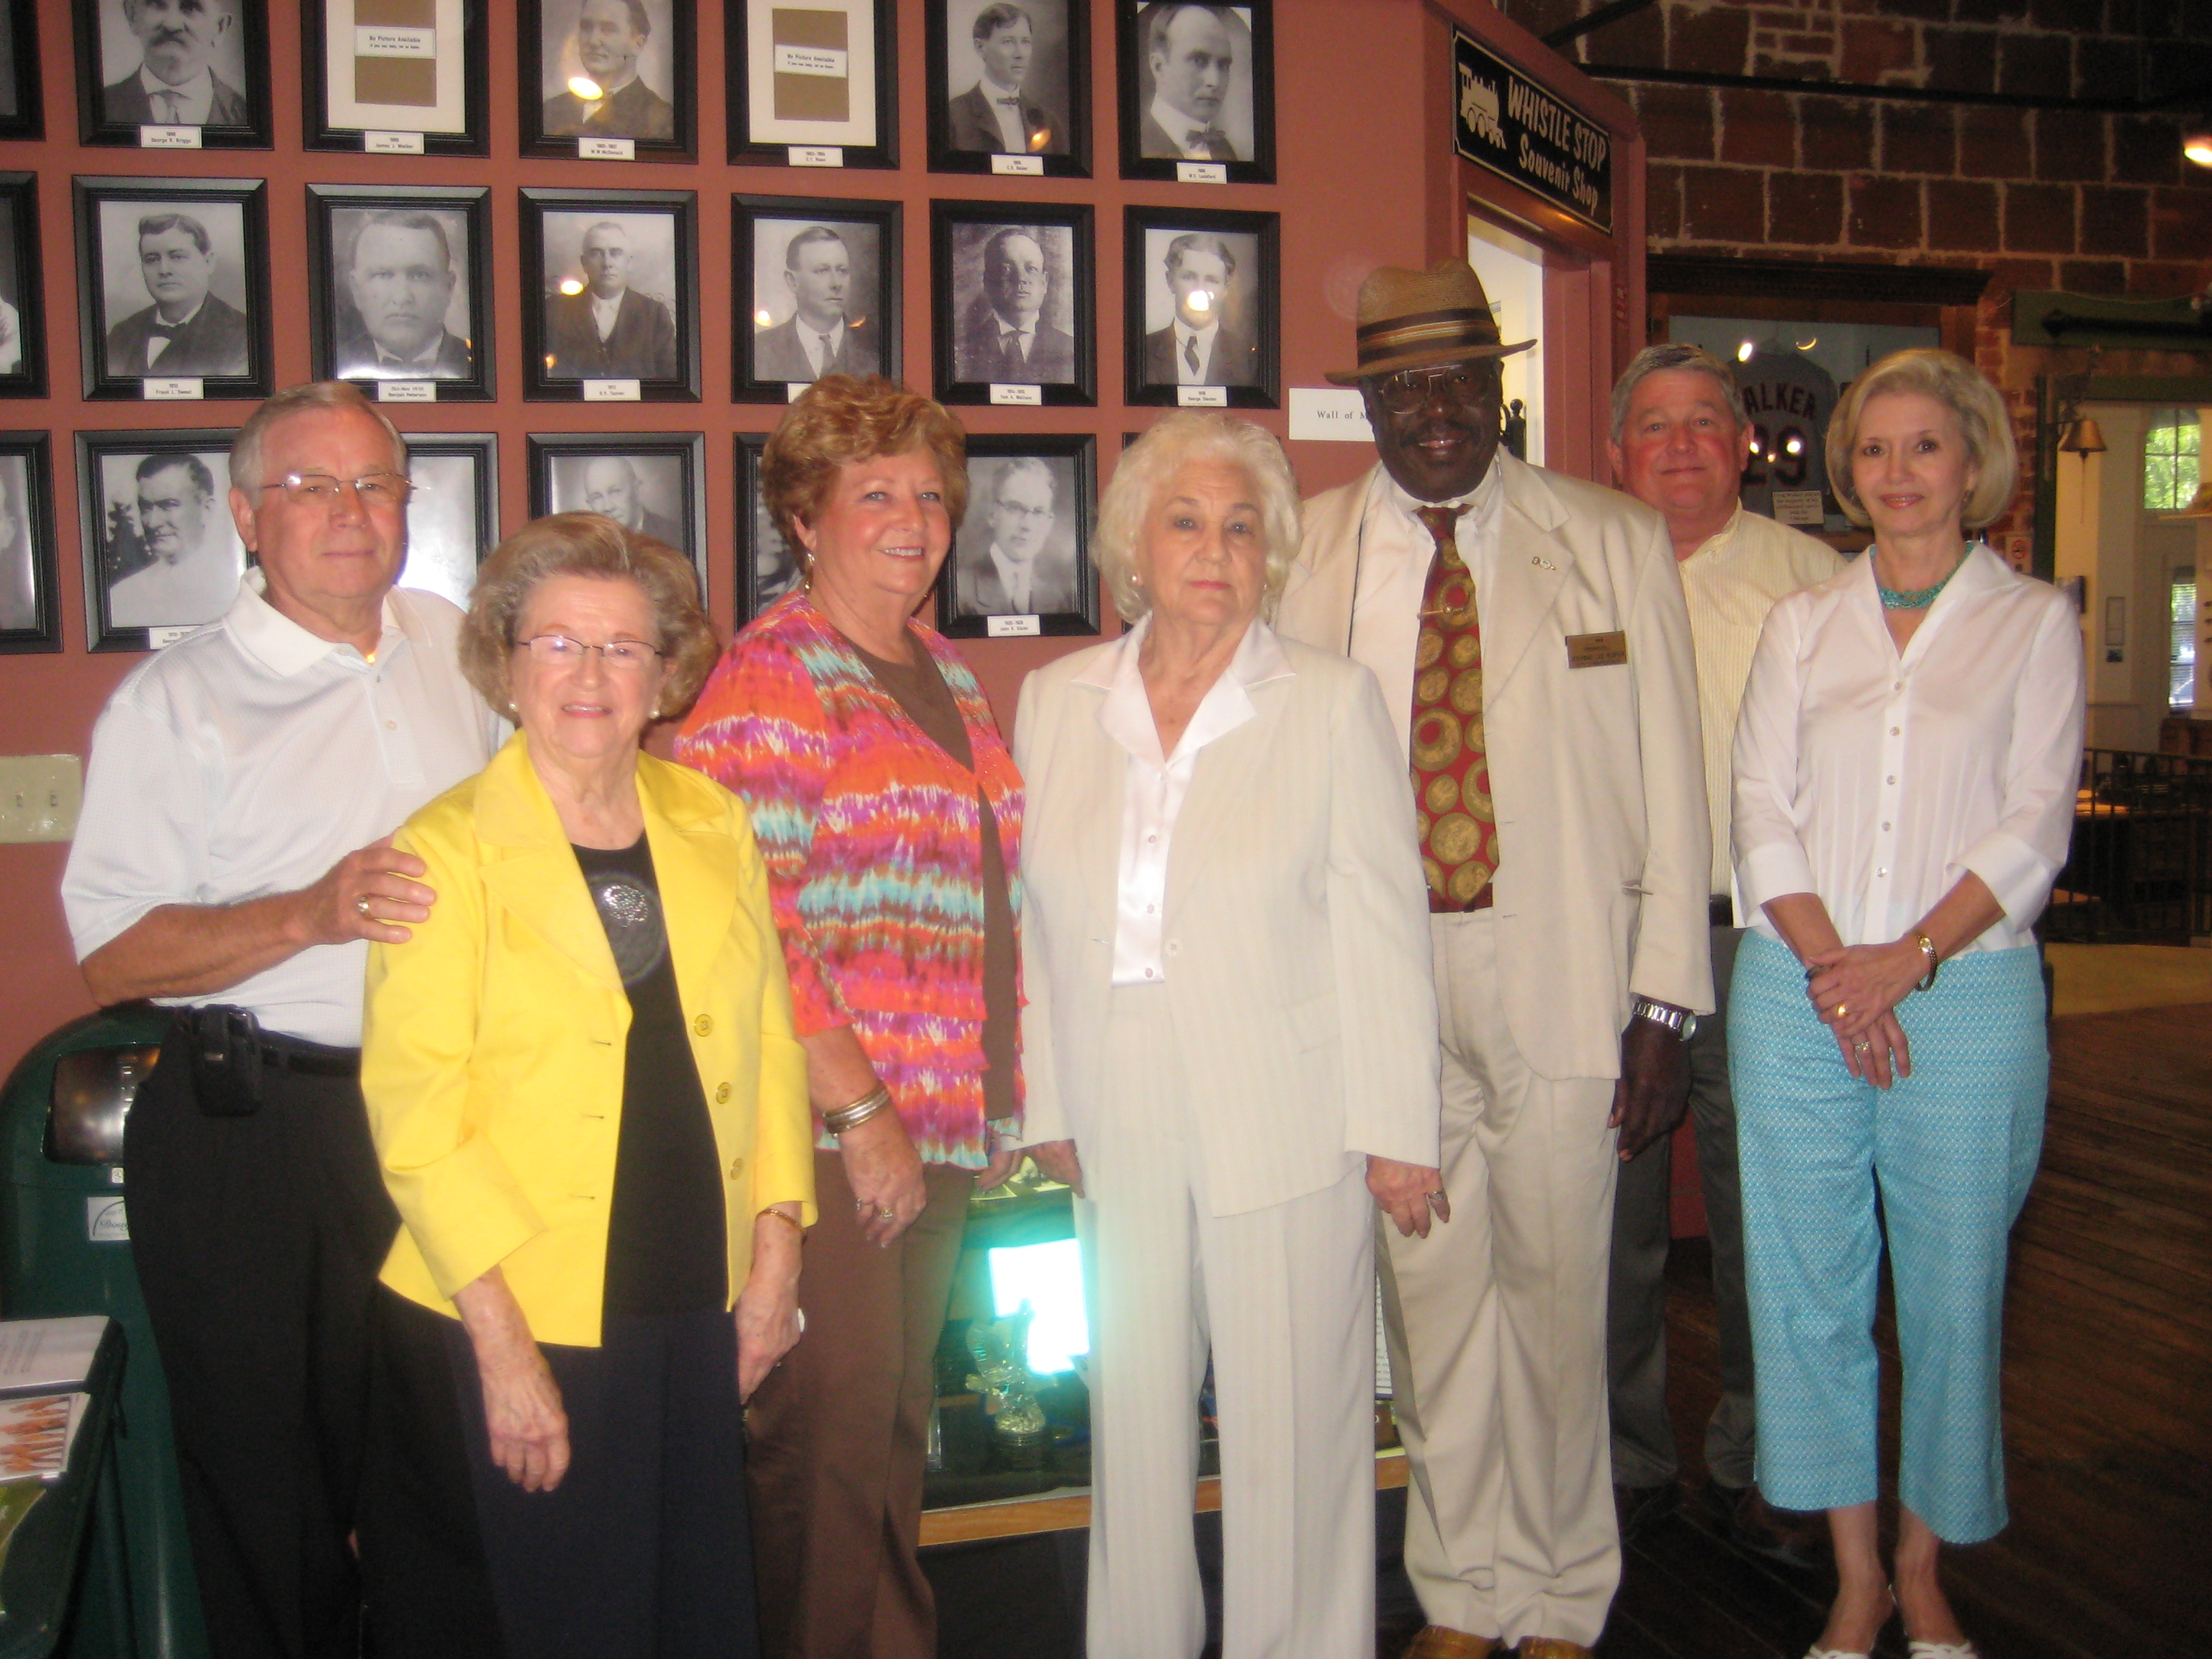 Transformational Leaders Exhibit at Heritage Station Museum